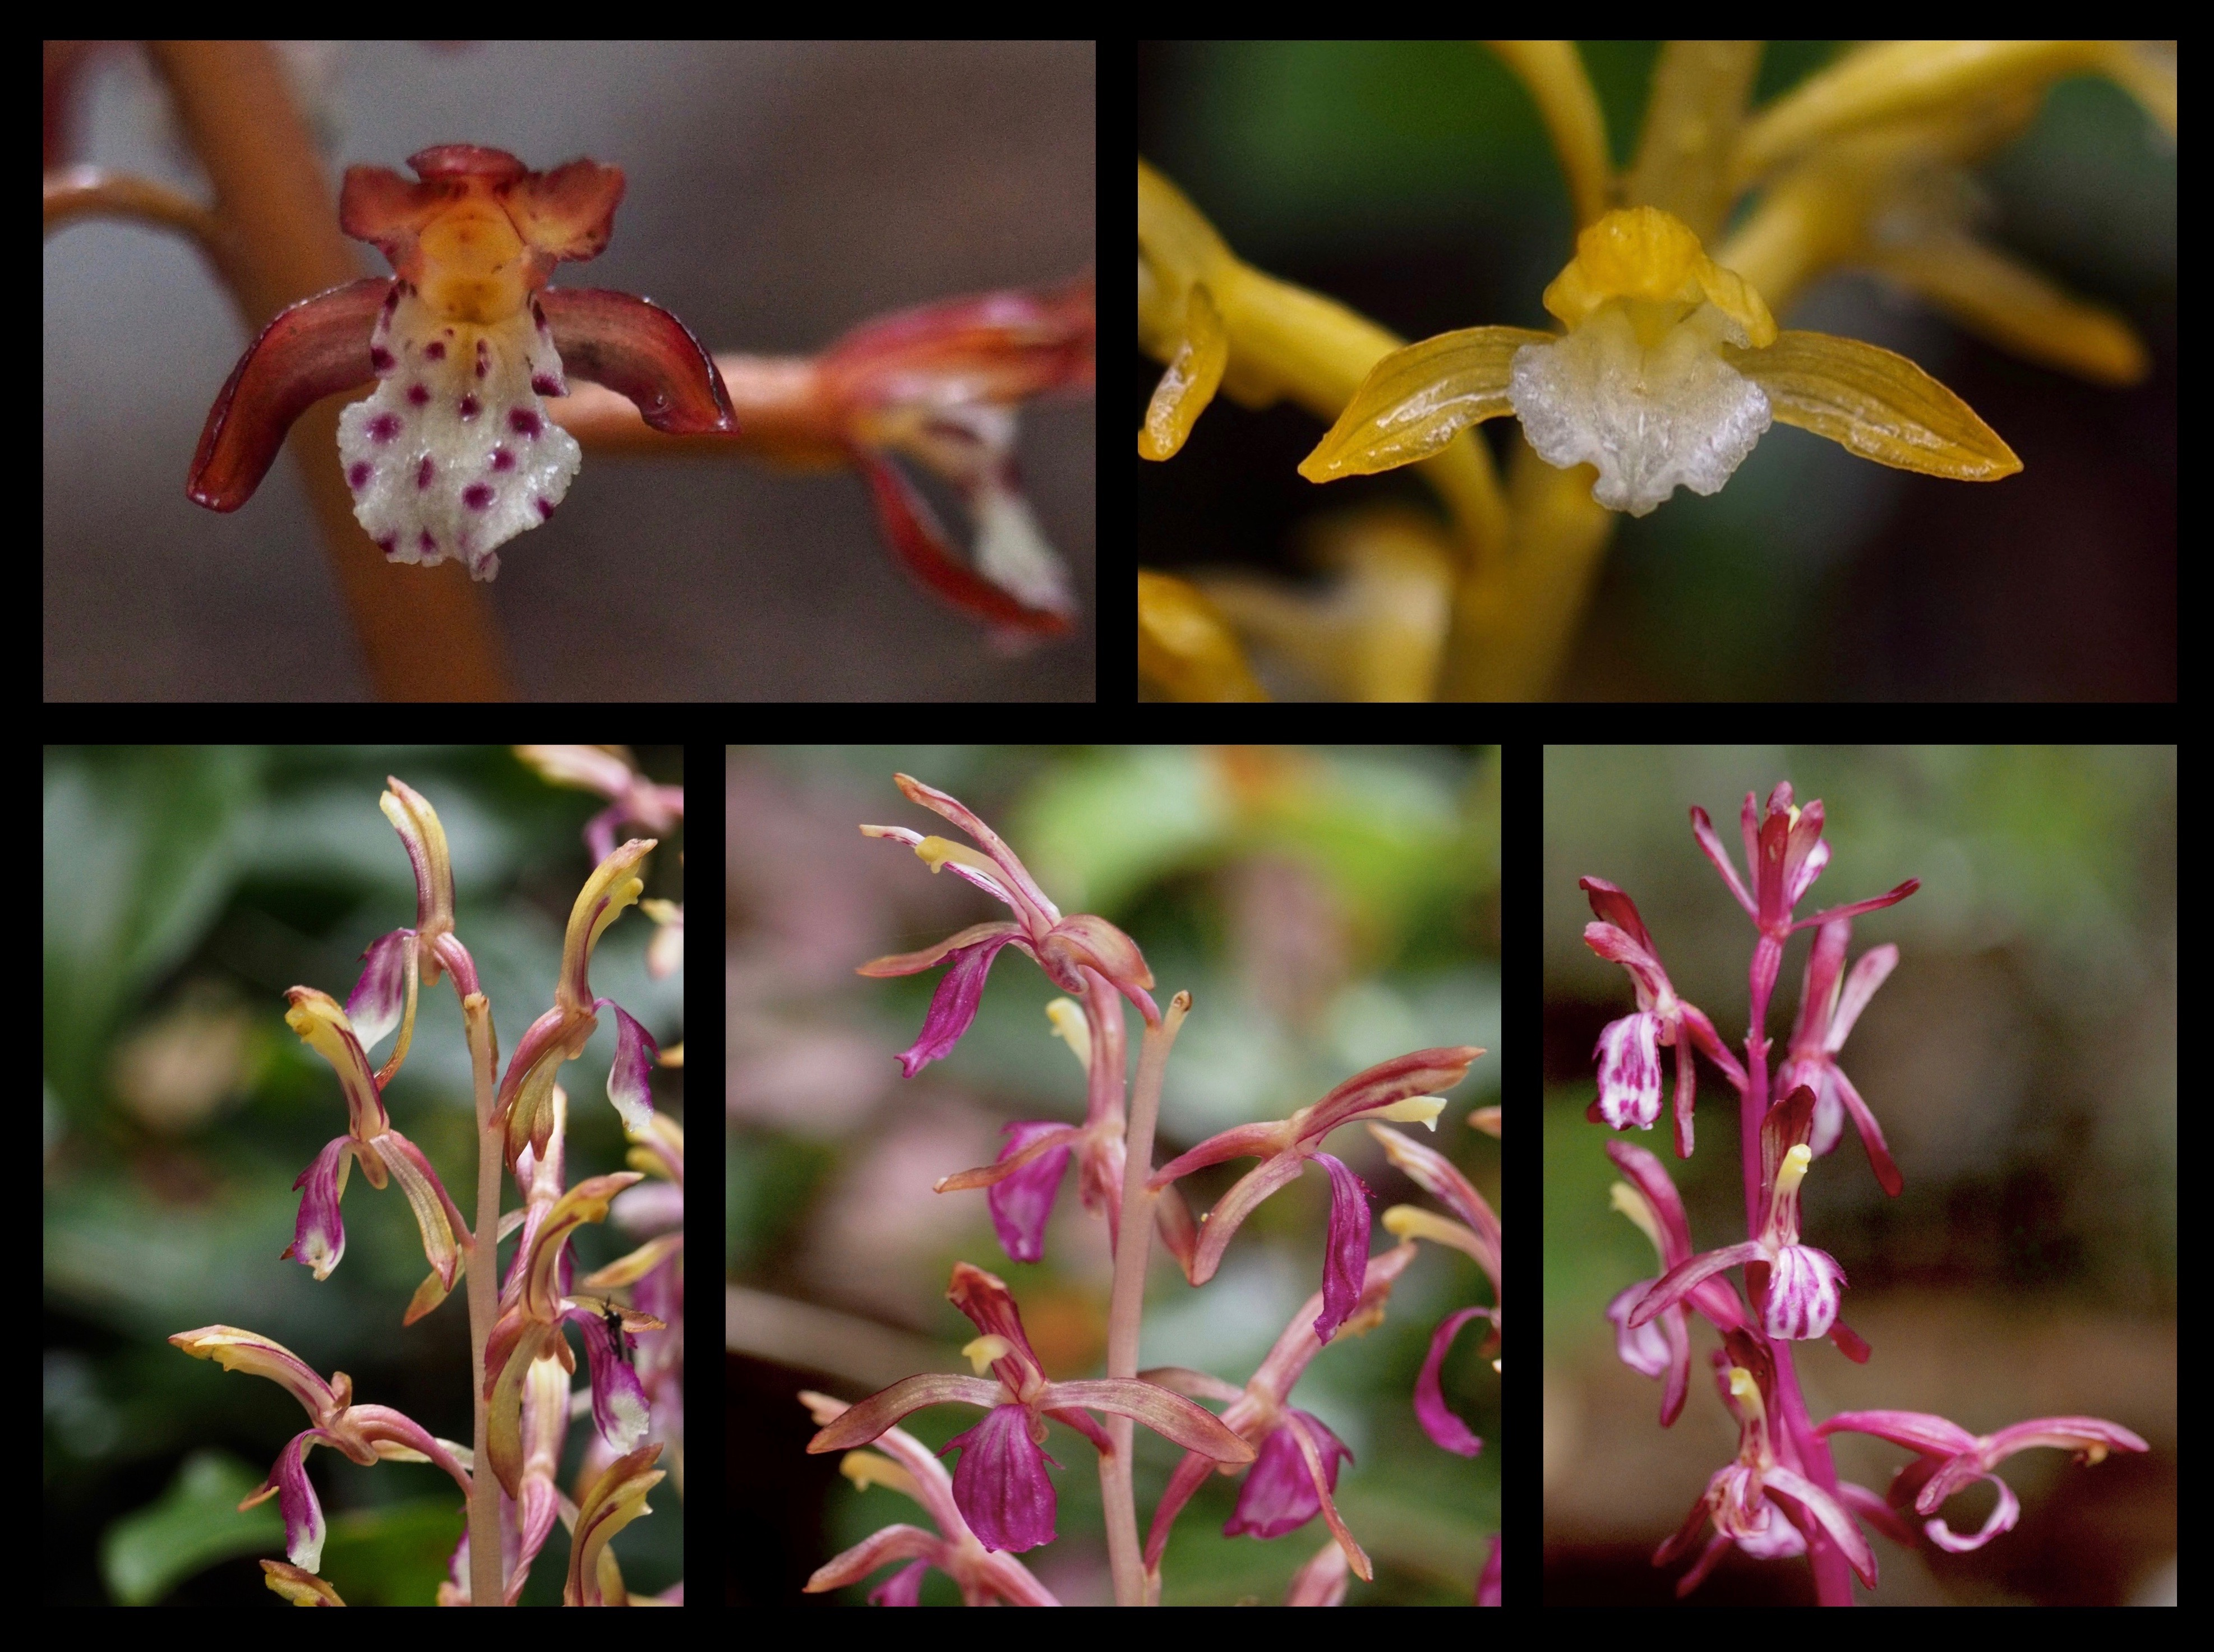 Coralroot orchids (Corallorhiza sp.) similarly lack leaves and chlorophyll and obtain nutrients from fungi in the soil by means of their knobby, namesake underground stems. Western spotted coralroots (C. maculata var. occidentalis) occur along the trail in both their standard, coppery form (top left) and their uncommon -- and unspotted -- yellow and white variation (C. maculata var. occidentalis fma. immaculata) (top right). The Pacific, or, western coralroot orchid (C. mertensiana) (bottom) is also plentiful in a range of color variations, from minimally to almost fully magenta. Mount Zion Trail, June 15 and 19, 2016.